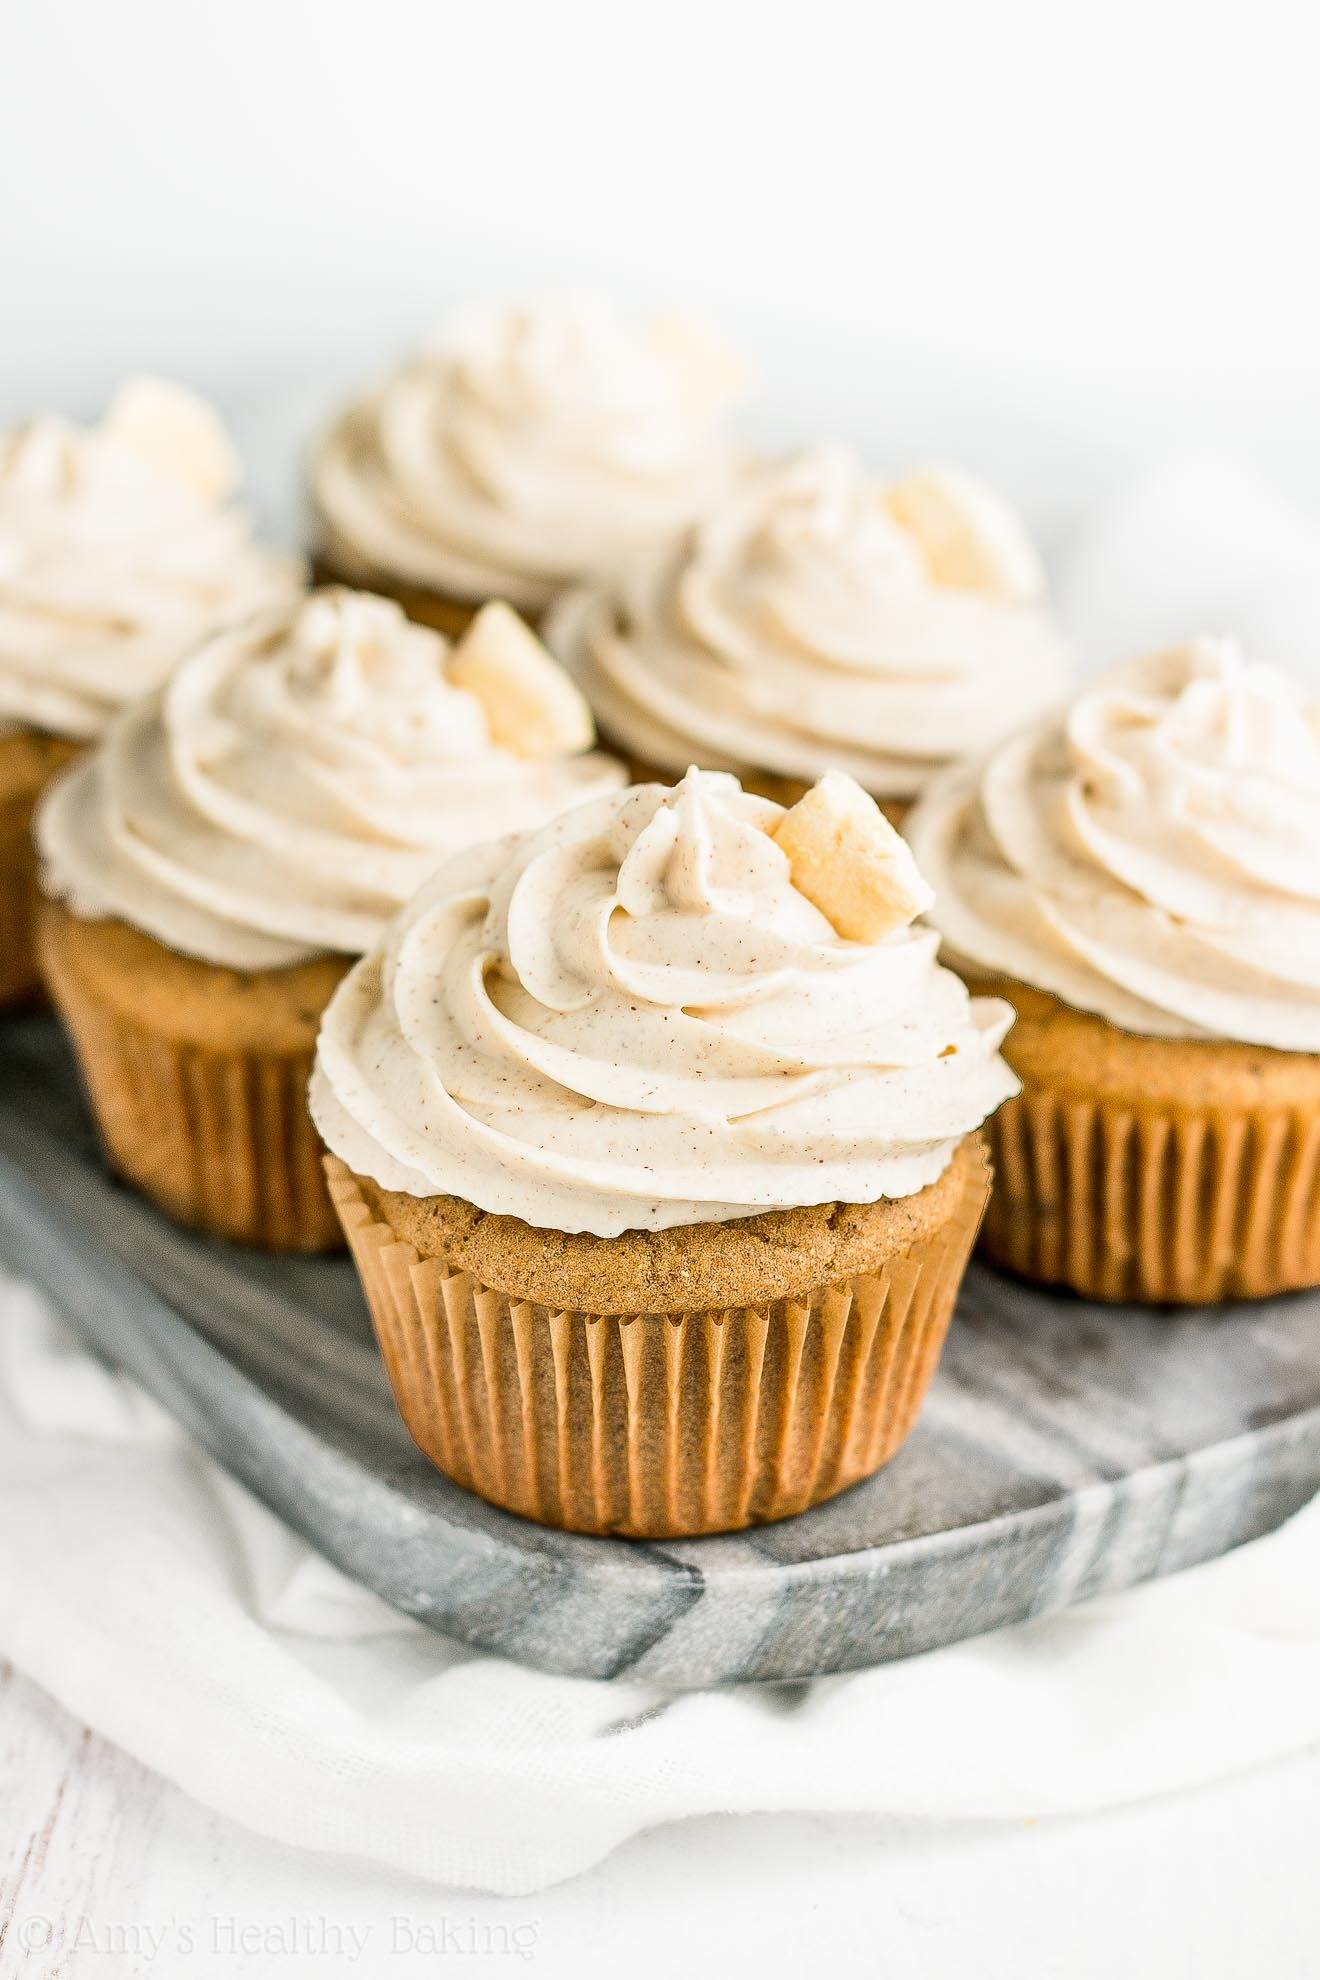 Super Healthy Low Calorie Cinnamon Apple Cupcakes with Greek Yogurt Frosting